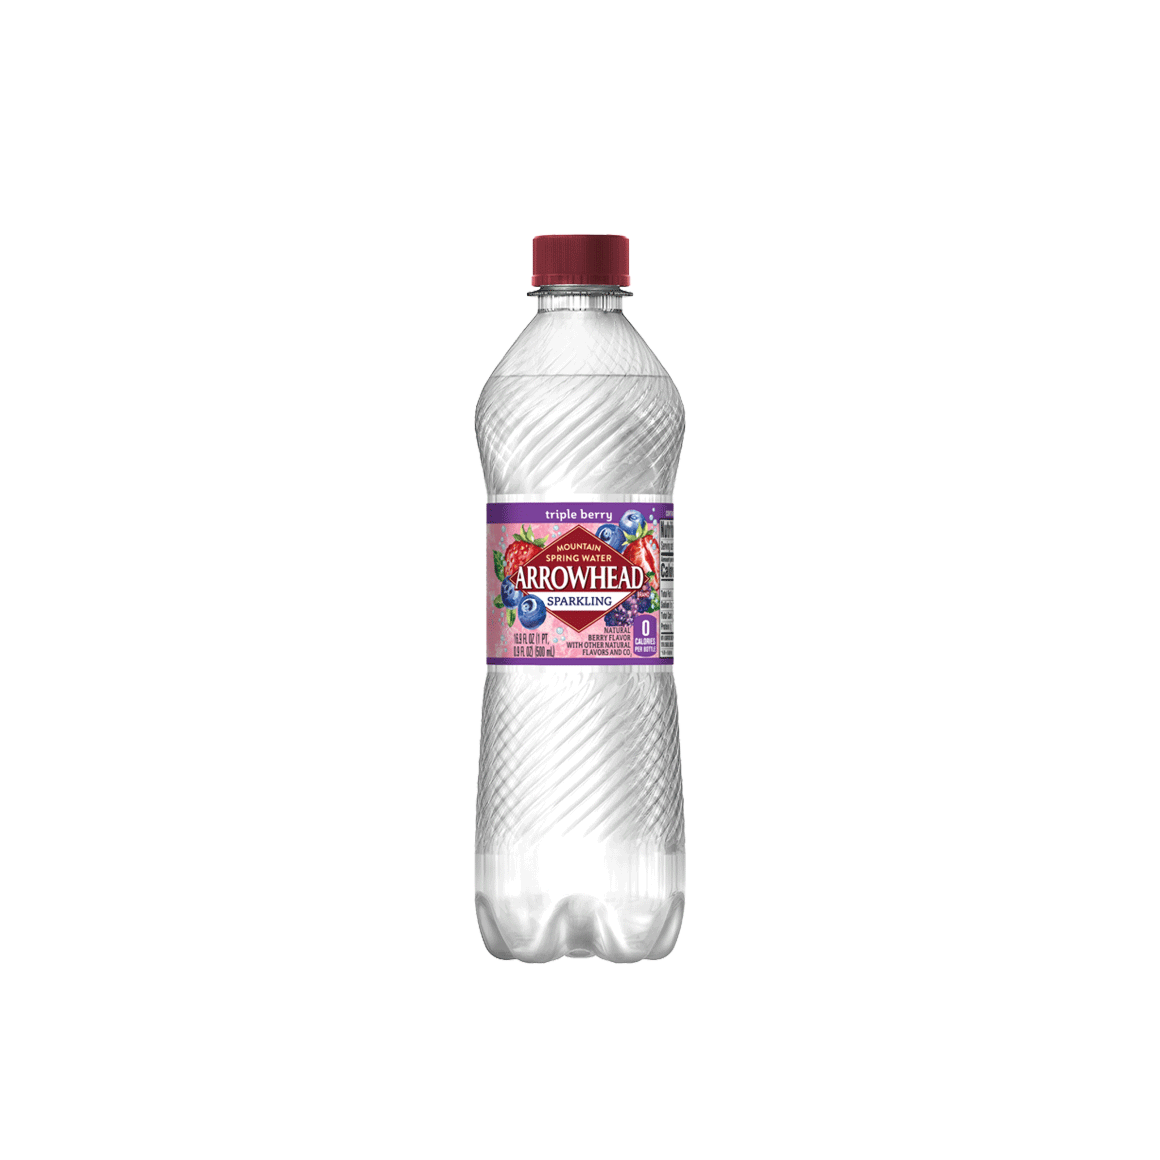 Arrowhead® Brand Sparkling 100% Mountain Spring Water - Rainbow Flavored Variety Pack Image2